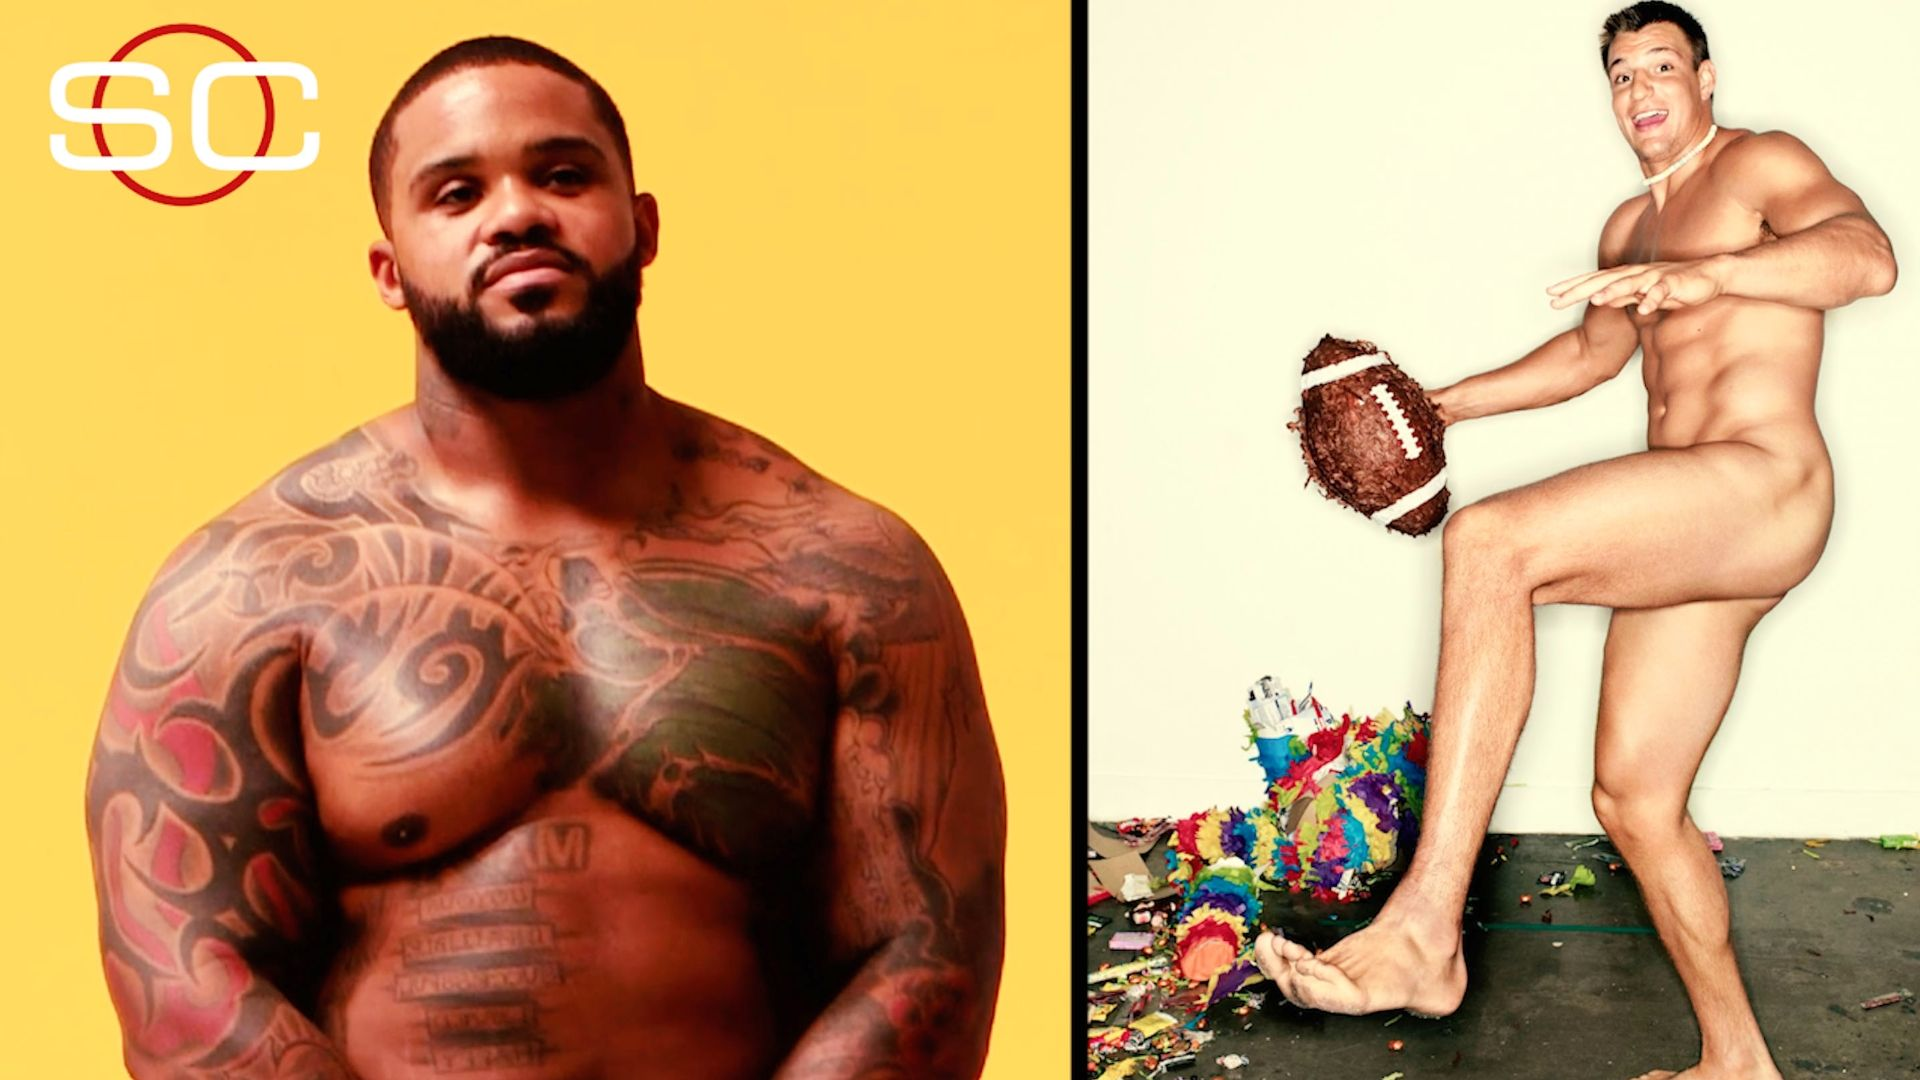 SC Featured: A memorable decade of the Body Issue